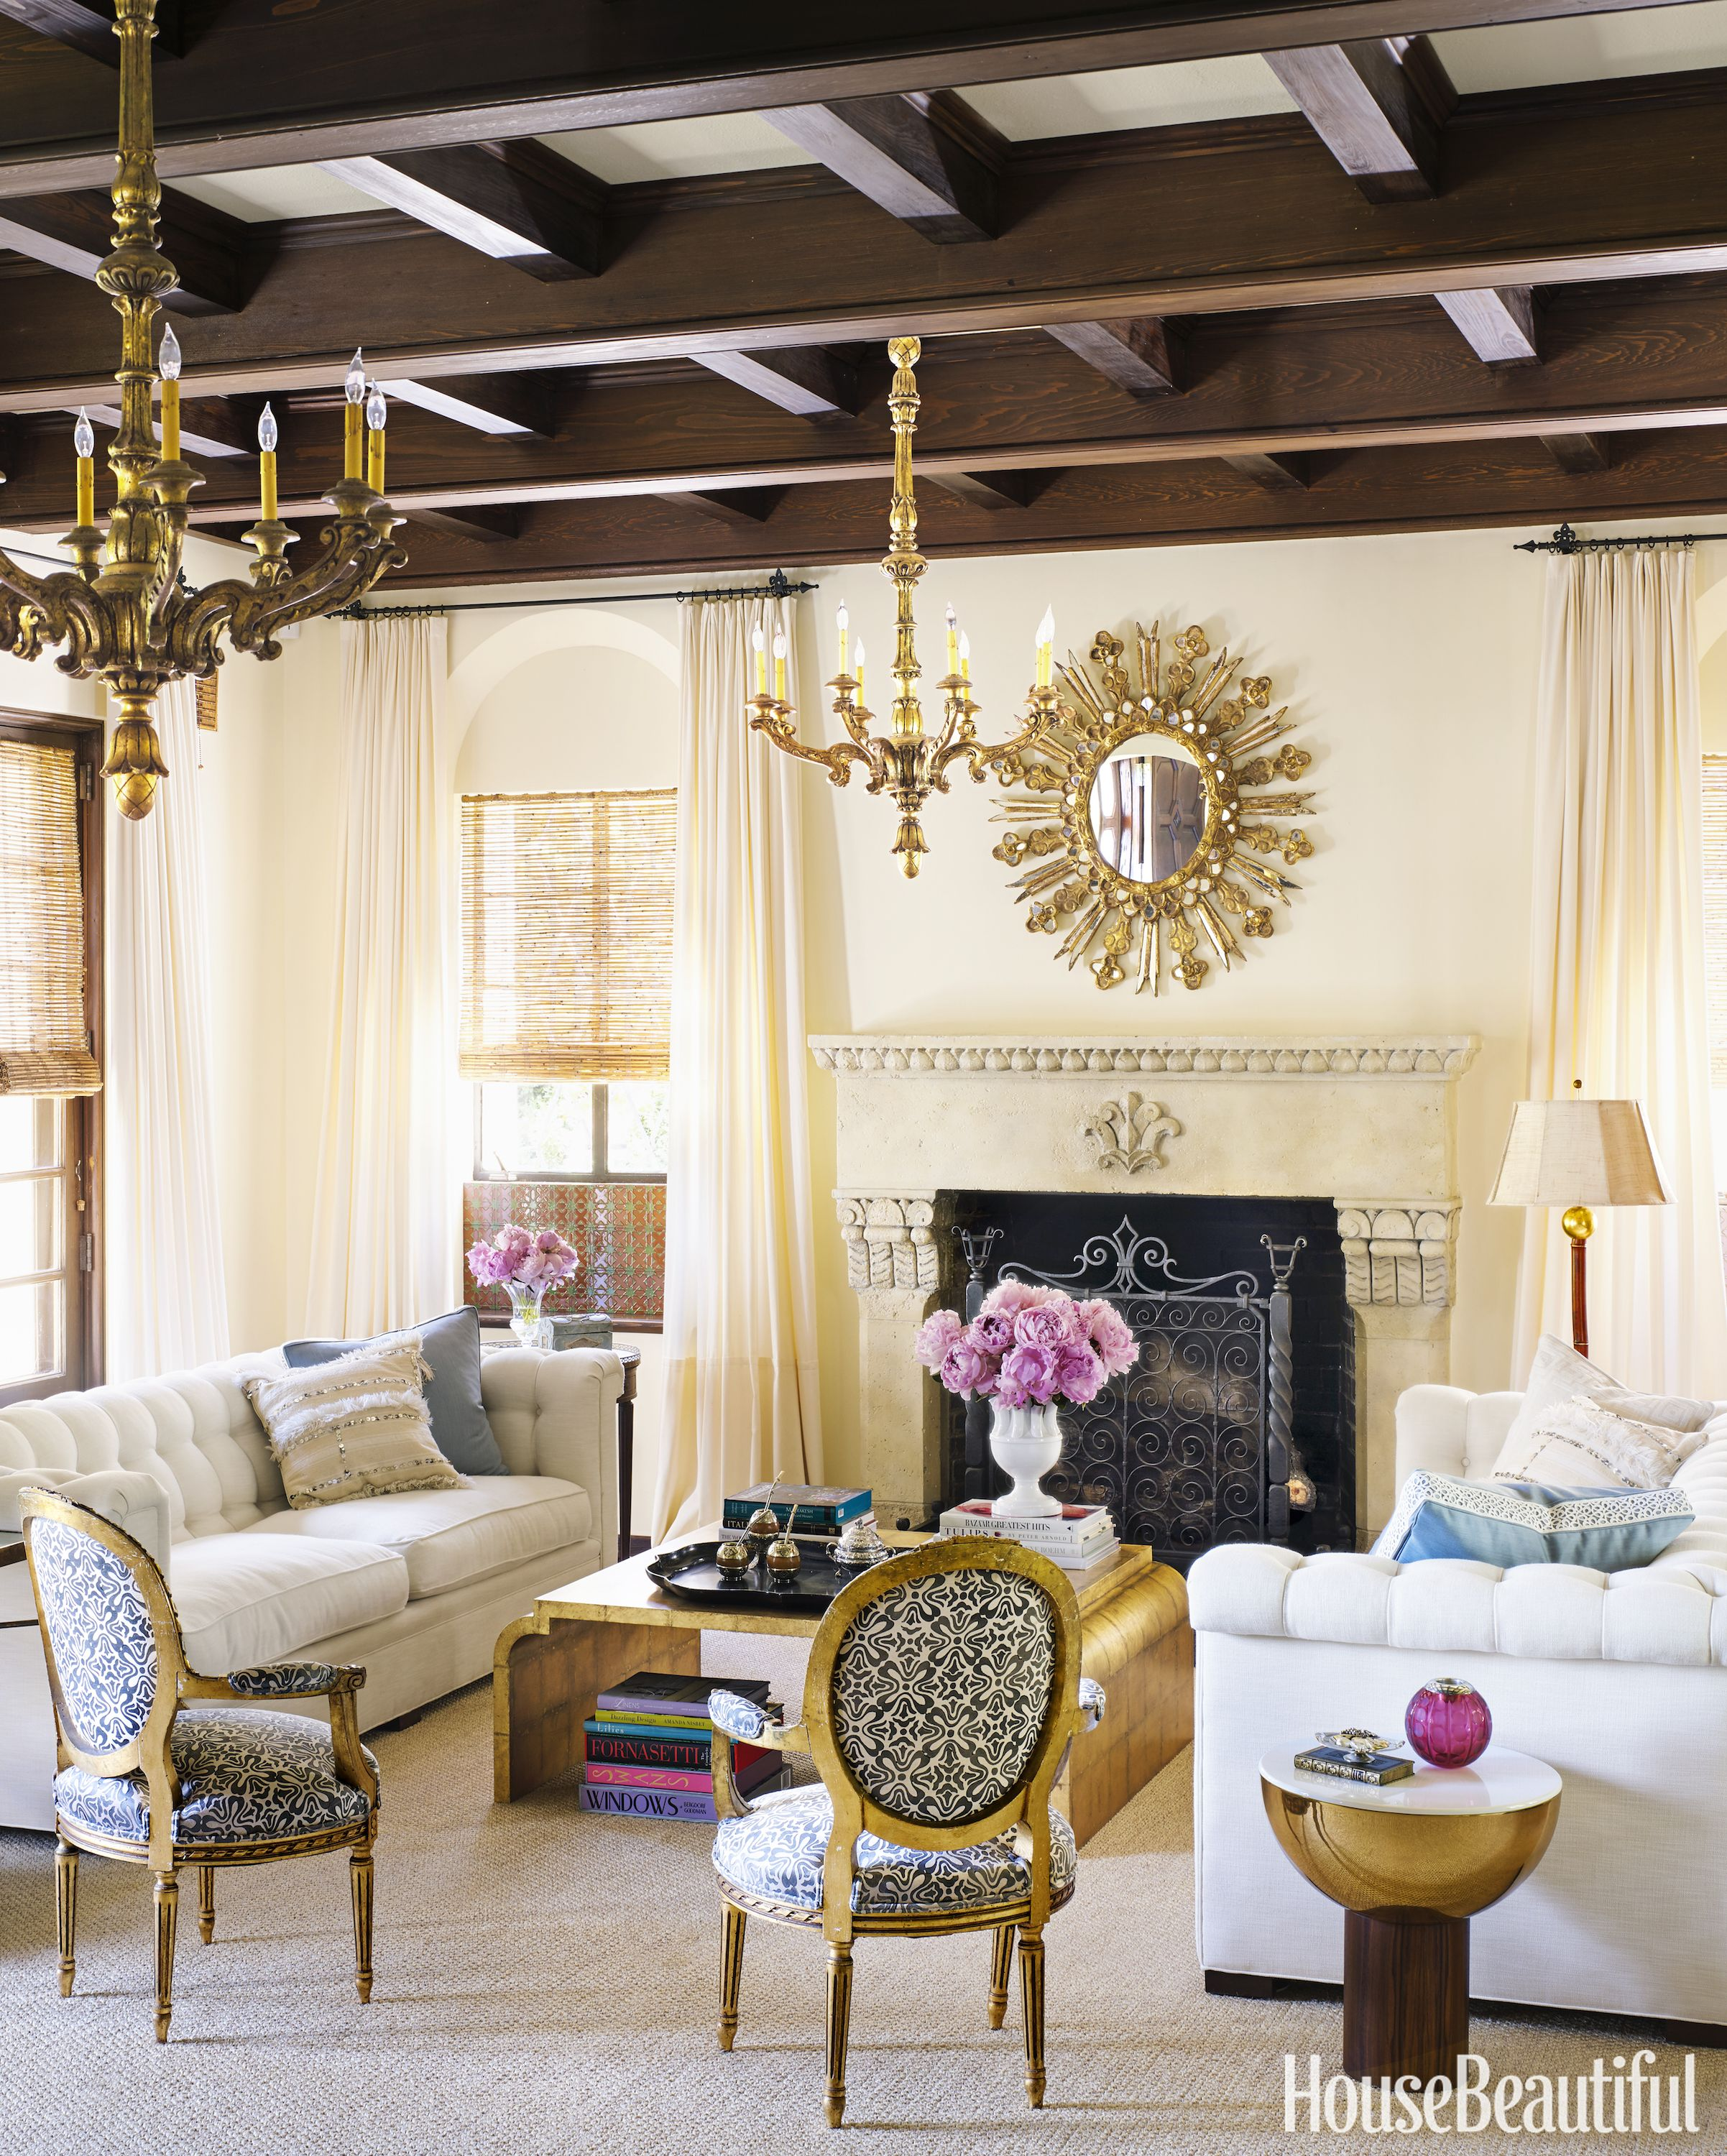 70 Living Room Decorating Ideas You'll Want To Steal ASAP